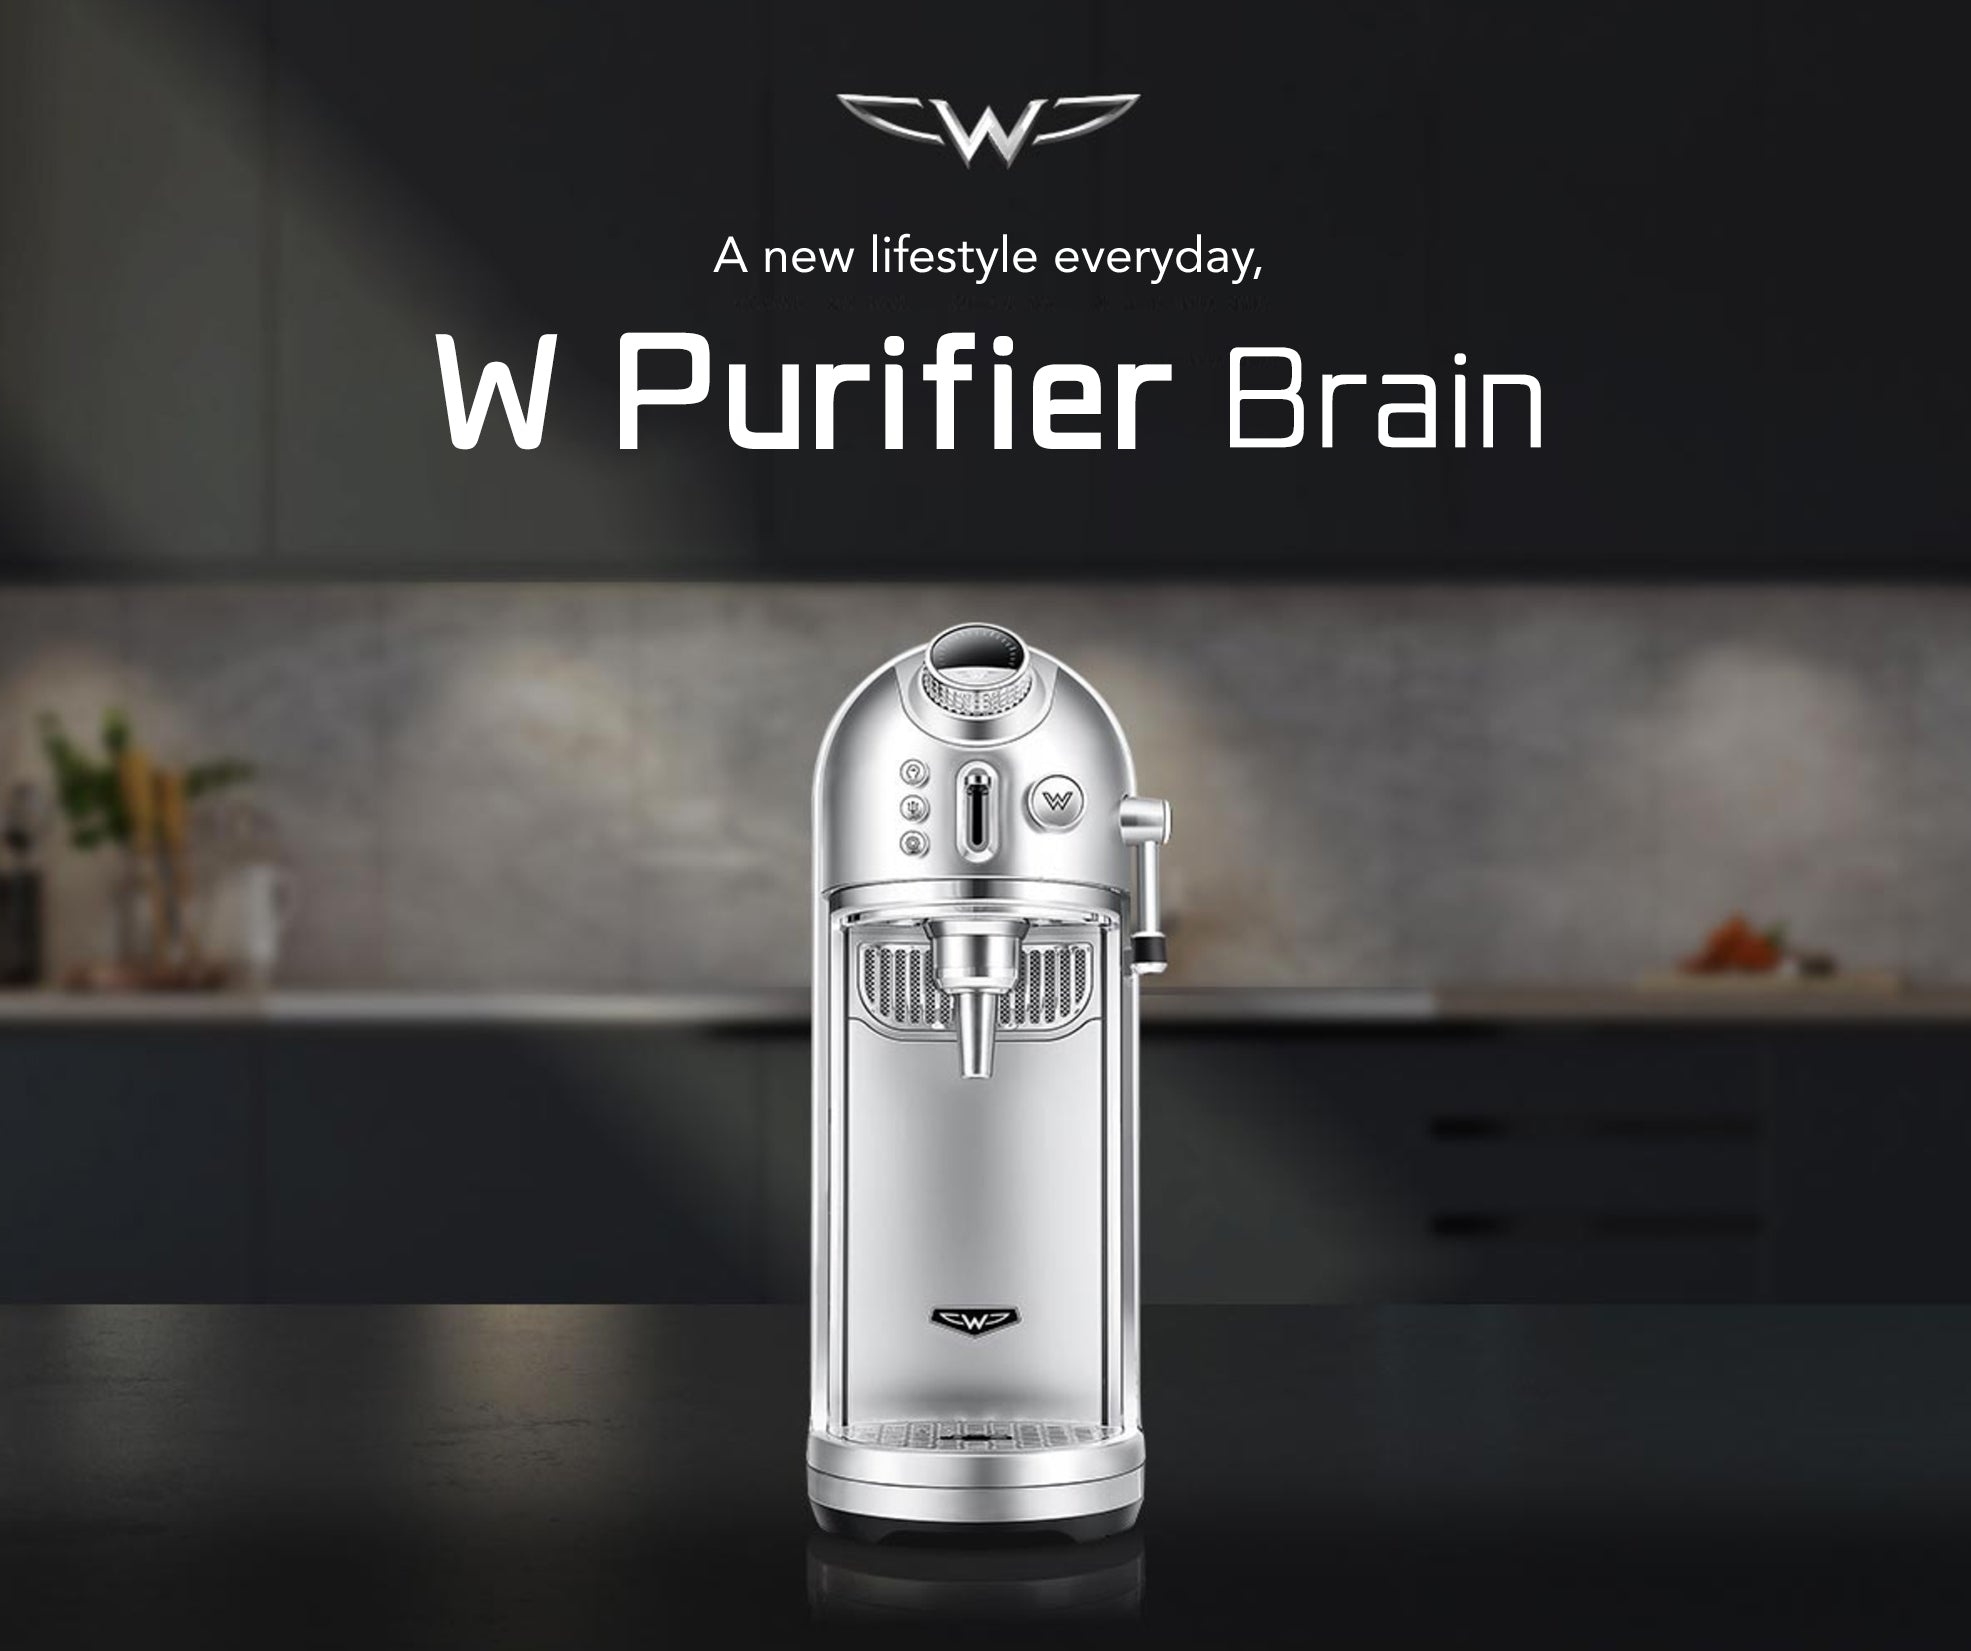 A New Lifestyle Everyday, W Purifier Brain